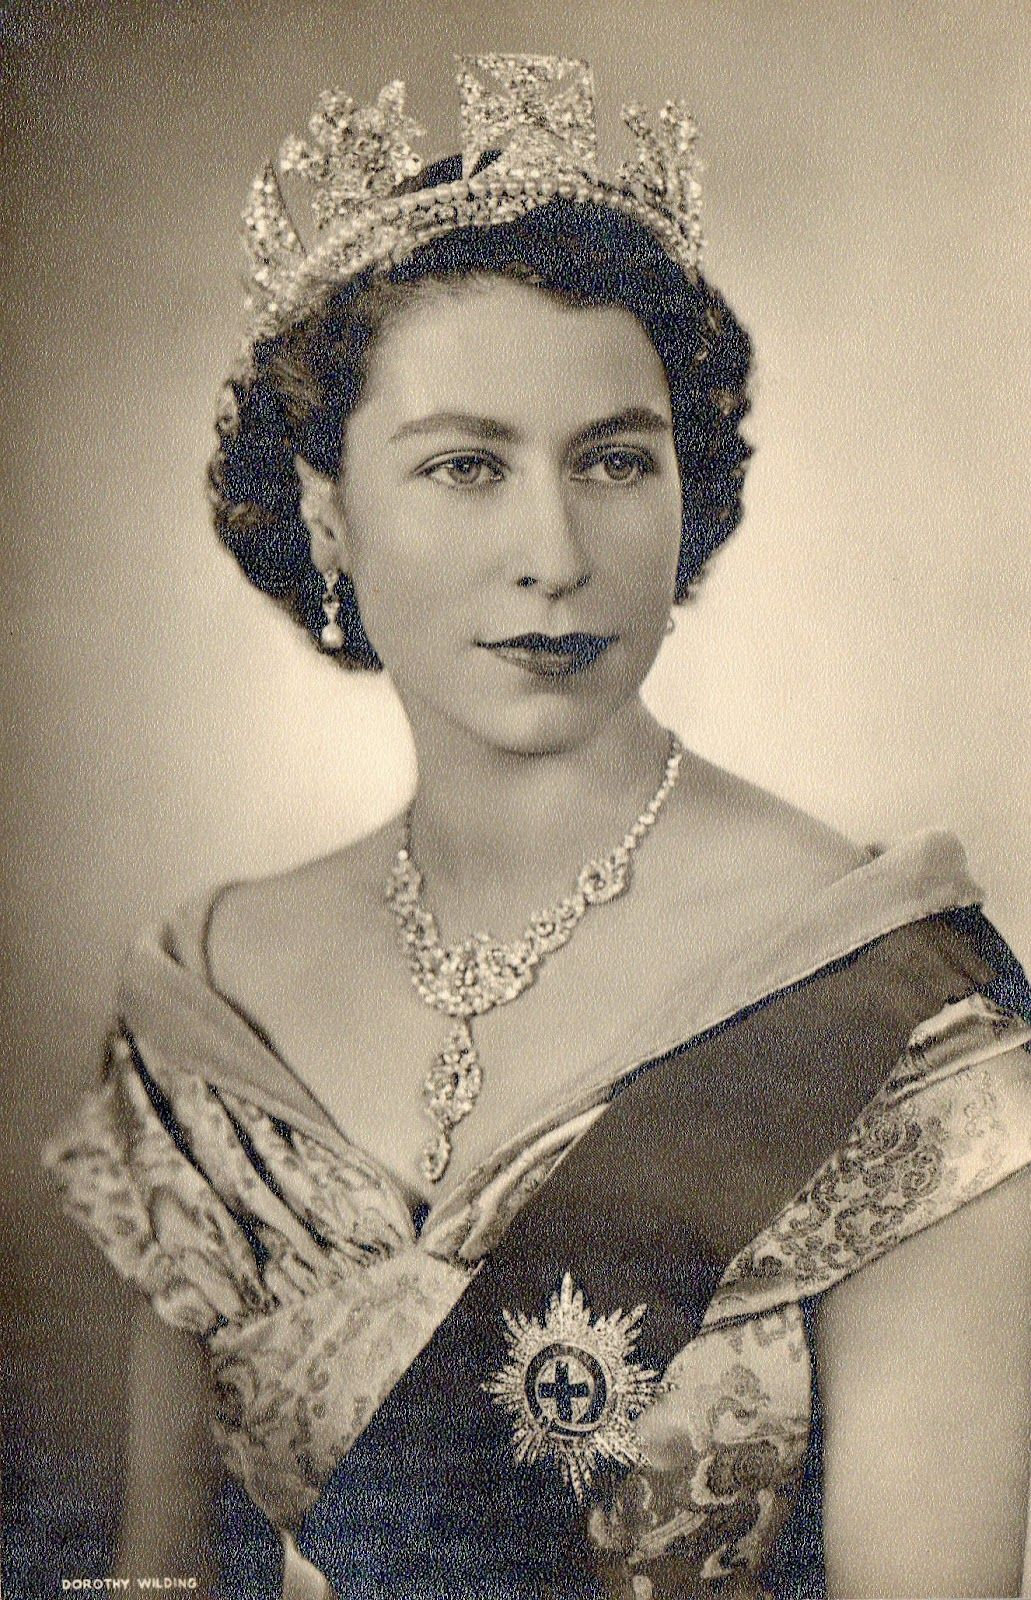 Perhaps the most famous jewellery from the 1950s HM